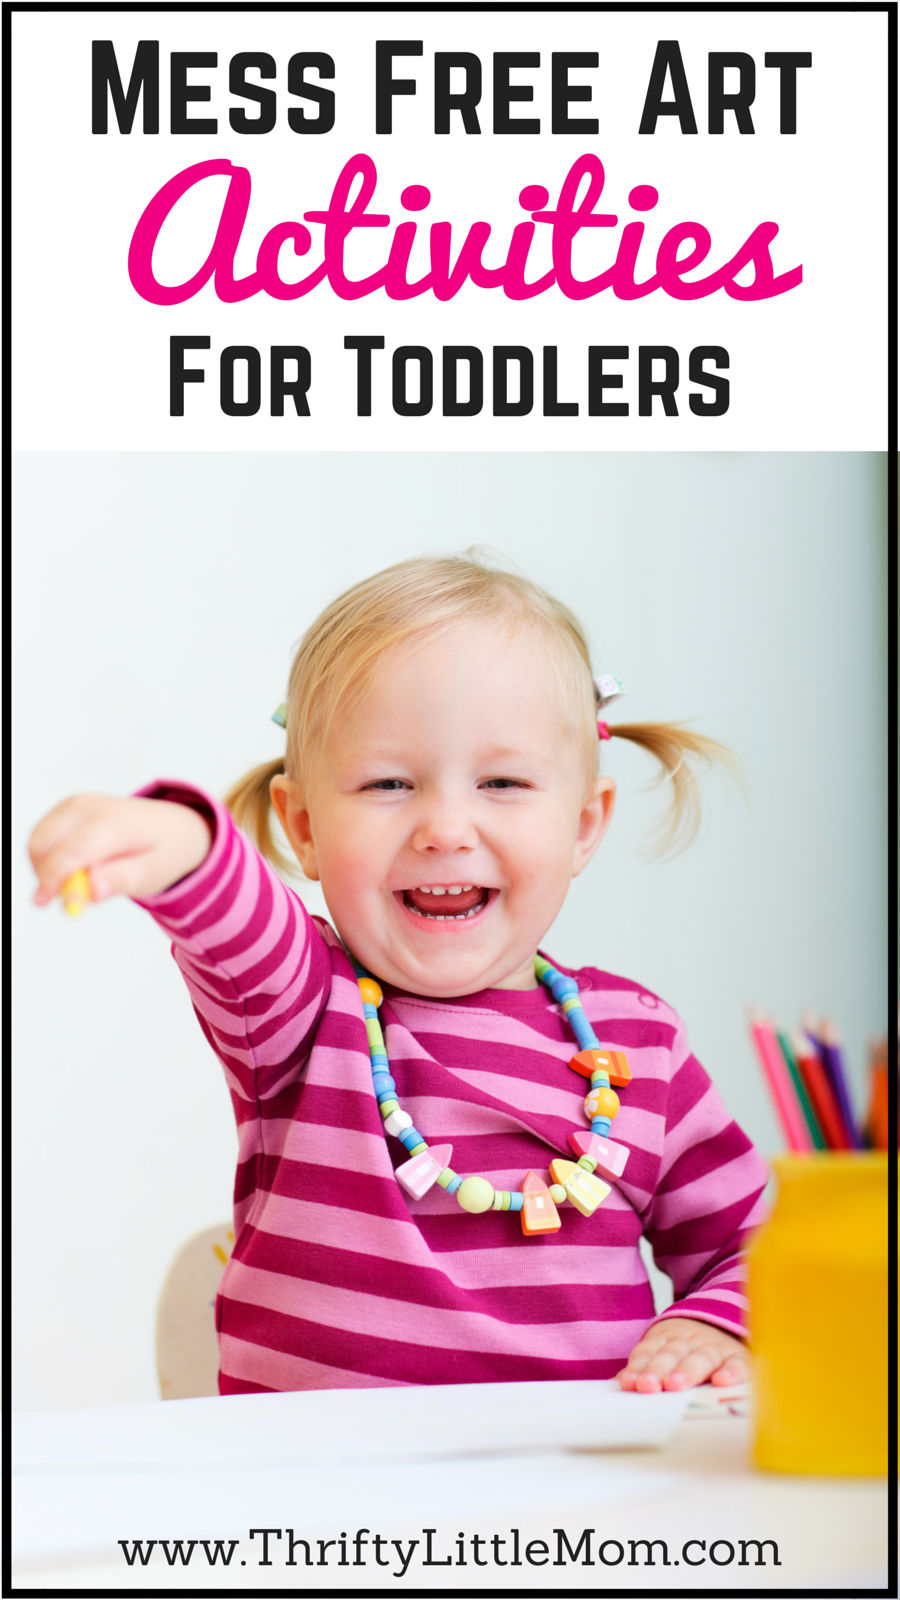 Mess Free Art Activities for Toddlers